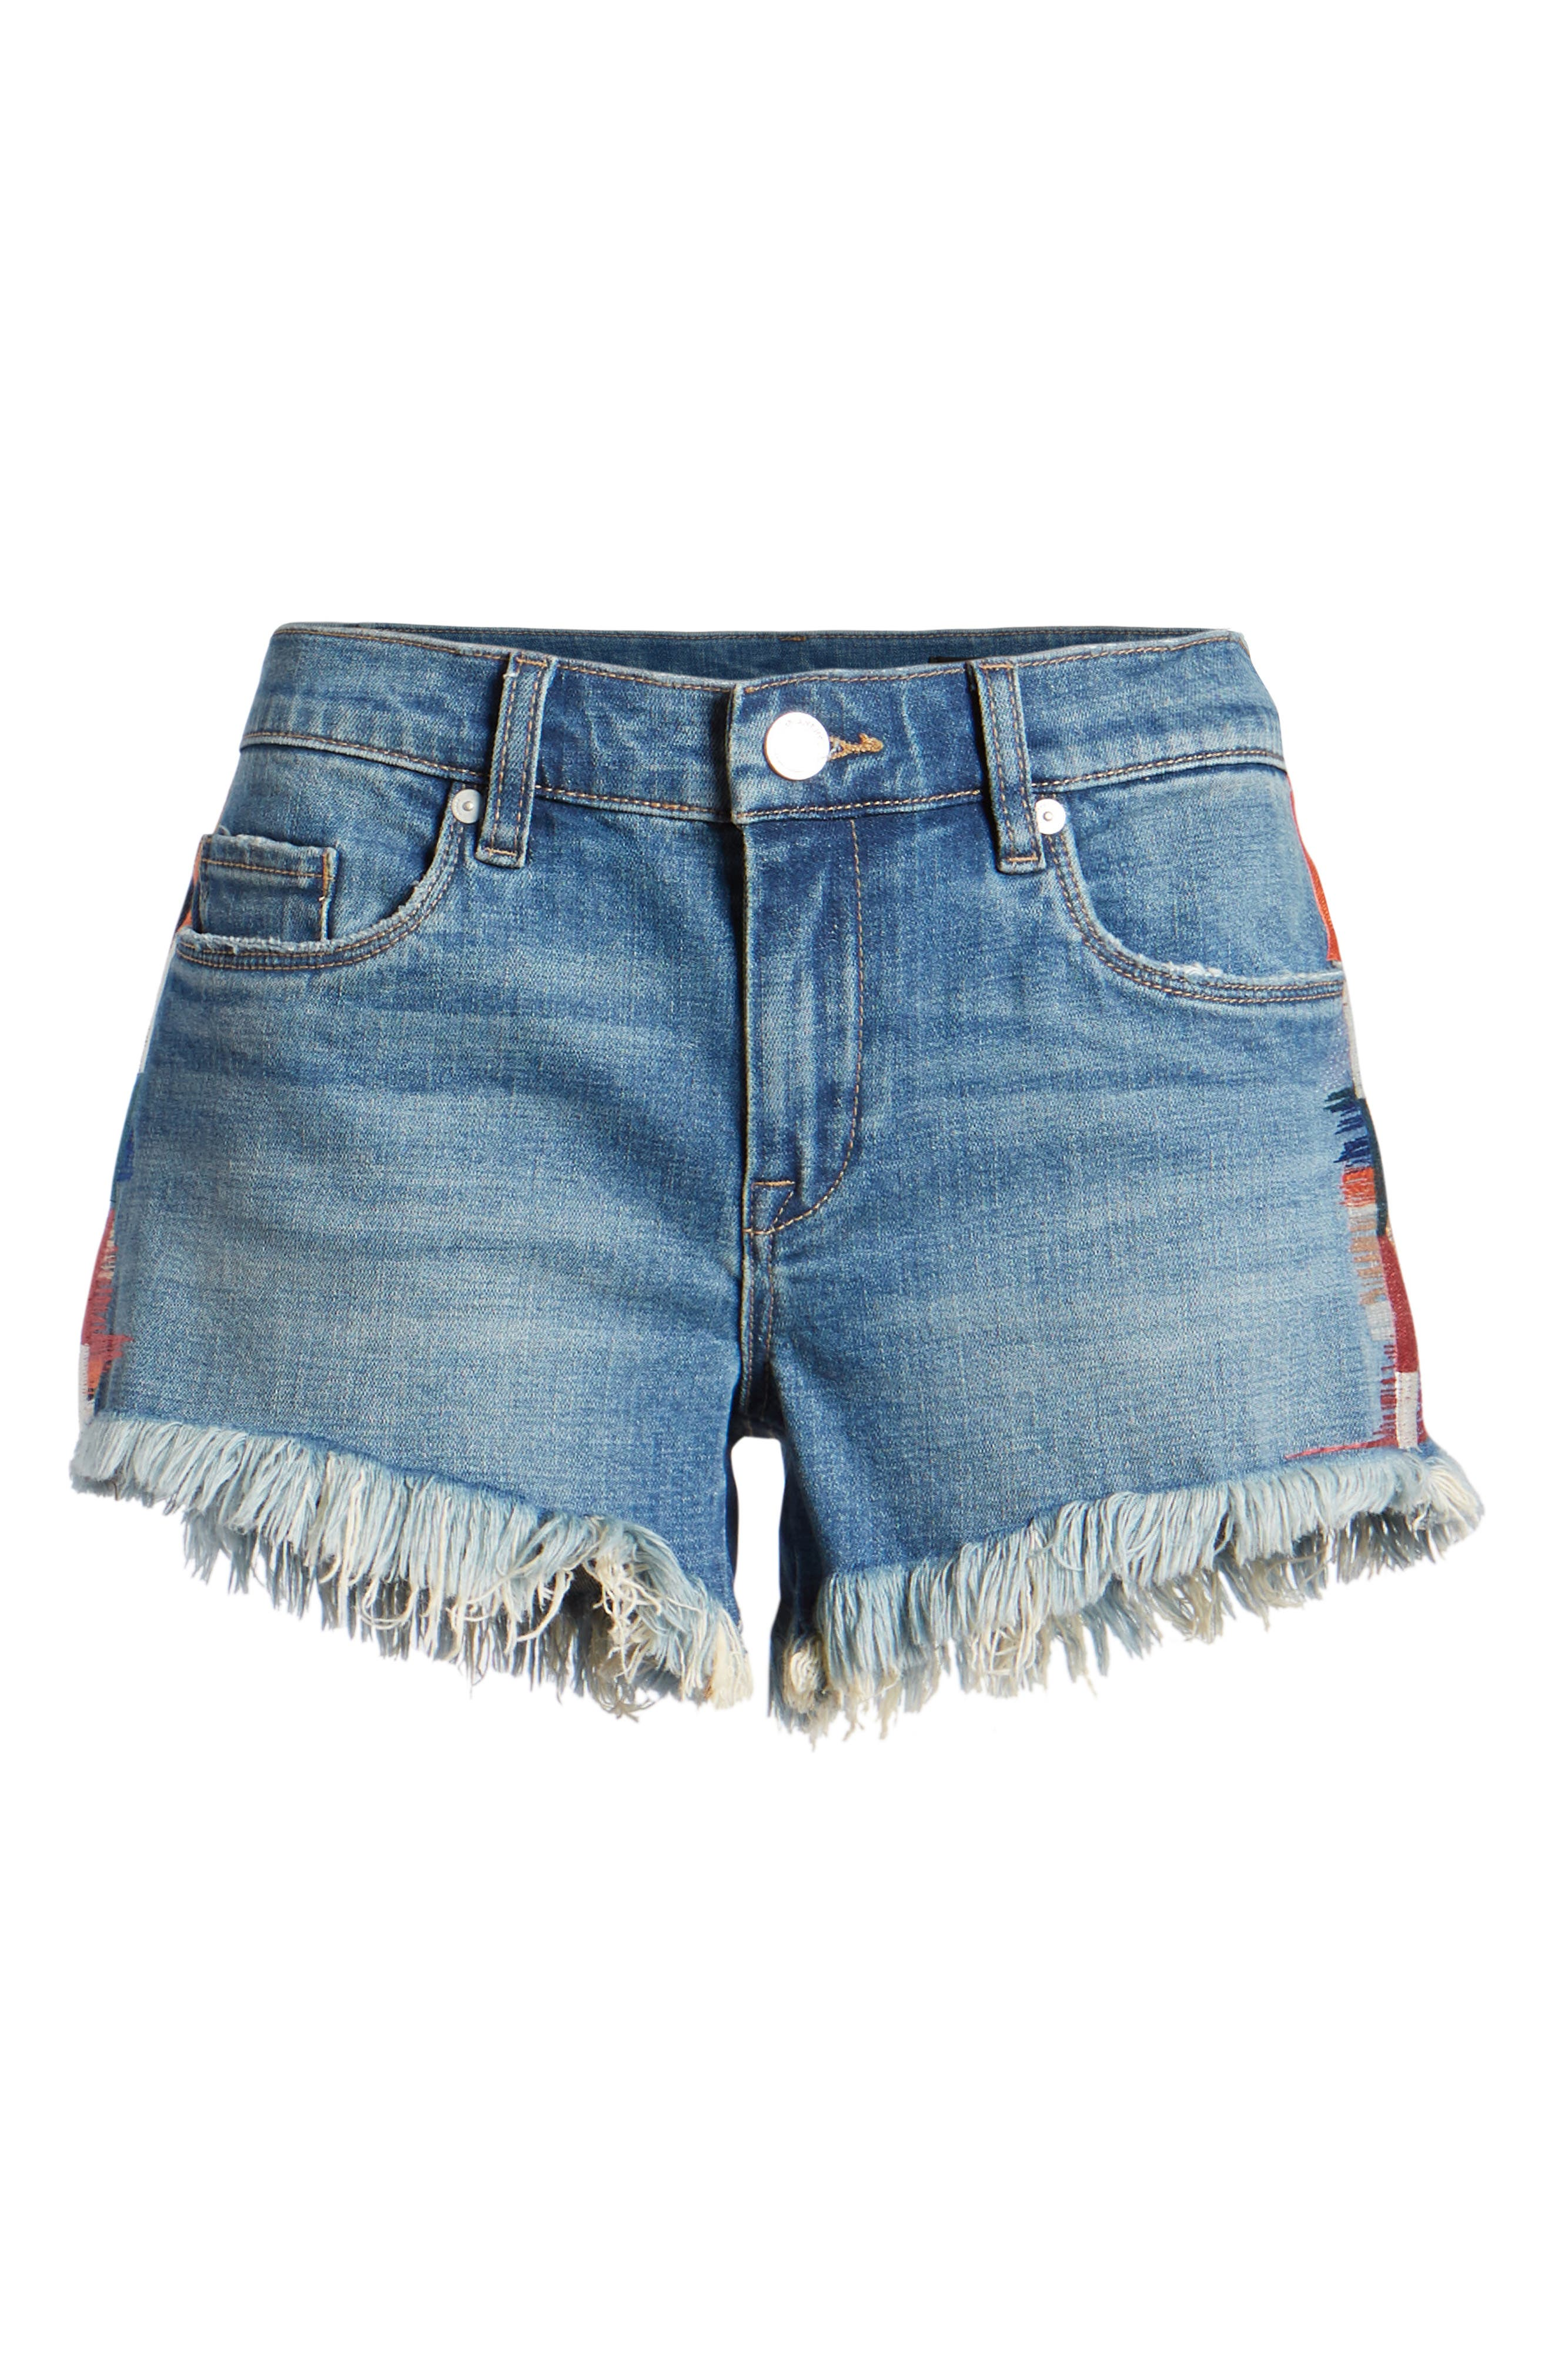 The Astor Embroidered Denim Shorts,                             Alternate thumbnail 7, color,                             East Coast Blue